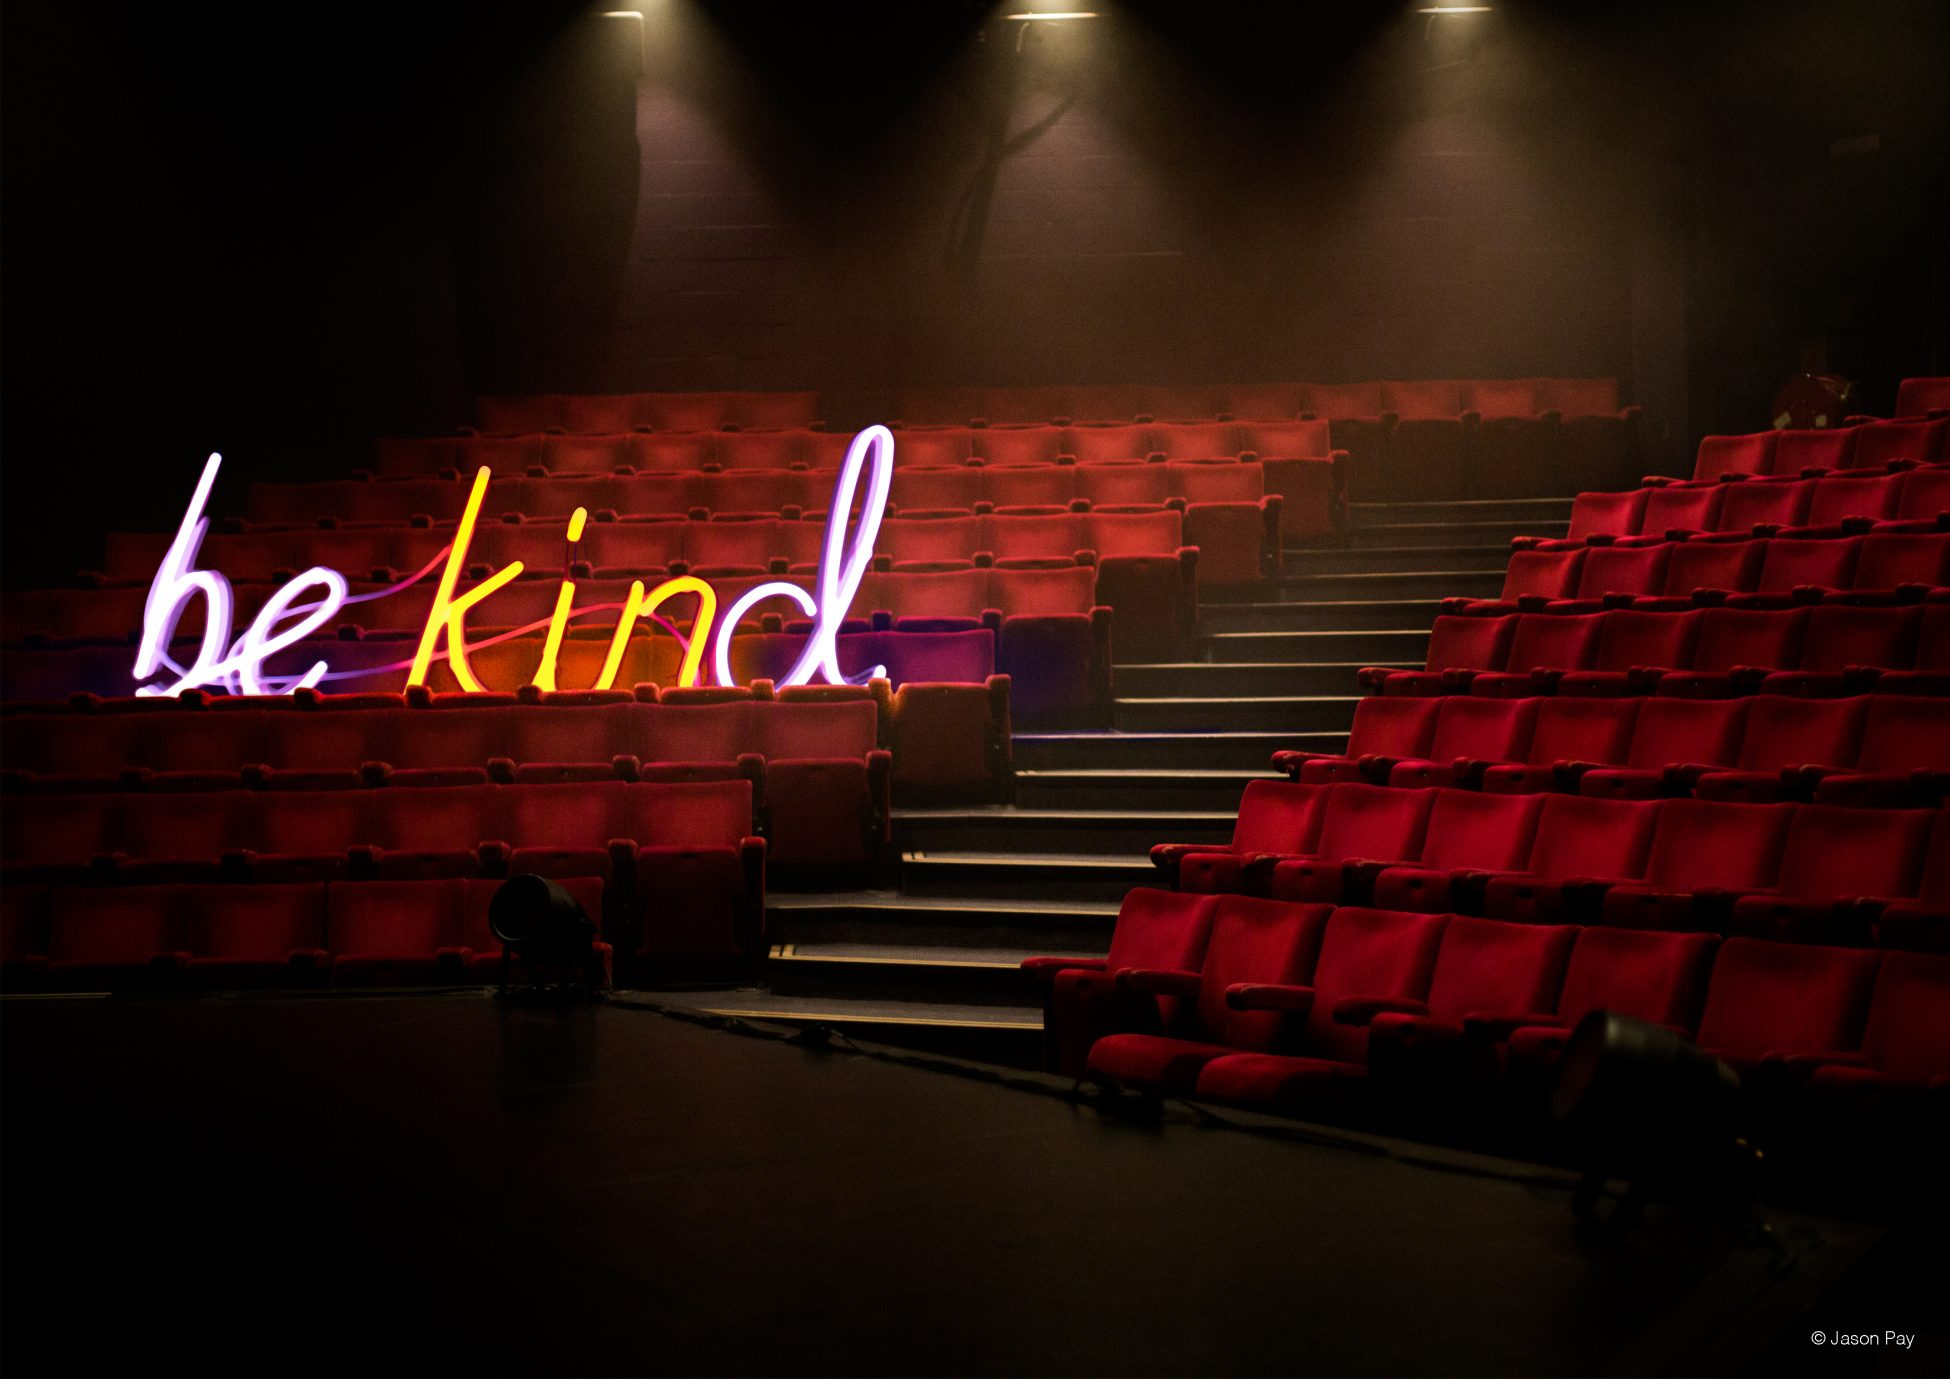 Digital artwork of a photo taken from a stage looking out over tiered rows of red theatre seats. Along one row is a giant neon sign spelling out 'be kind' in pink and yellow light.